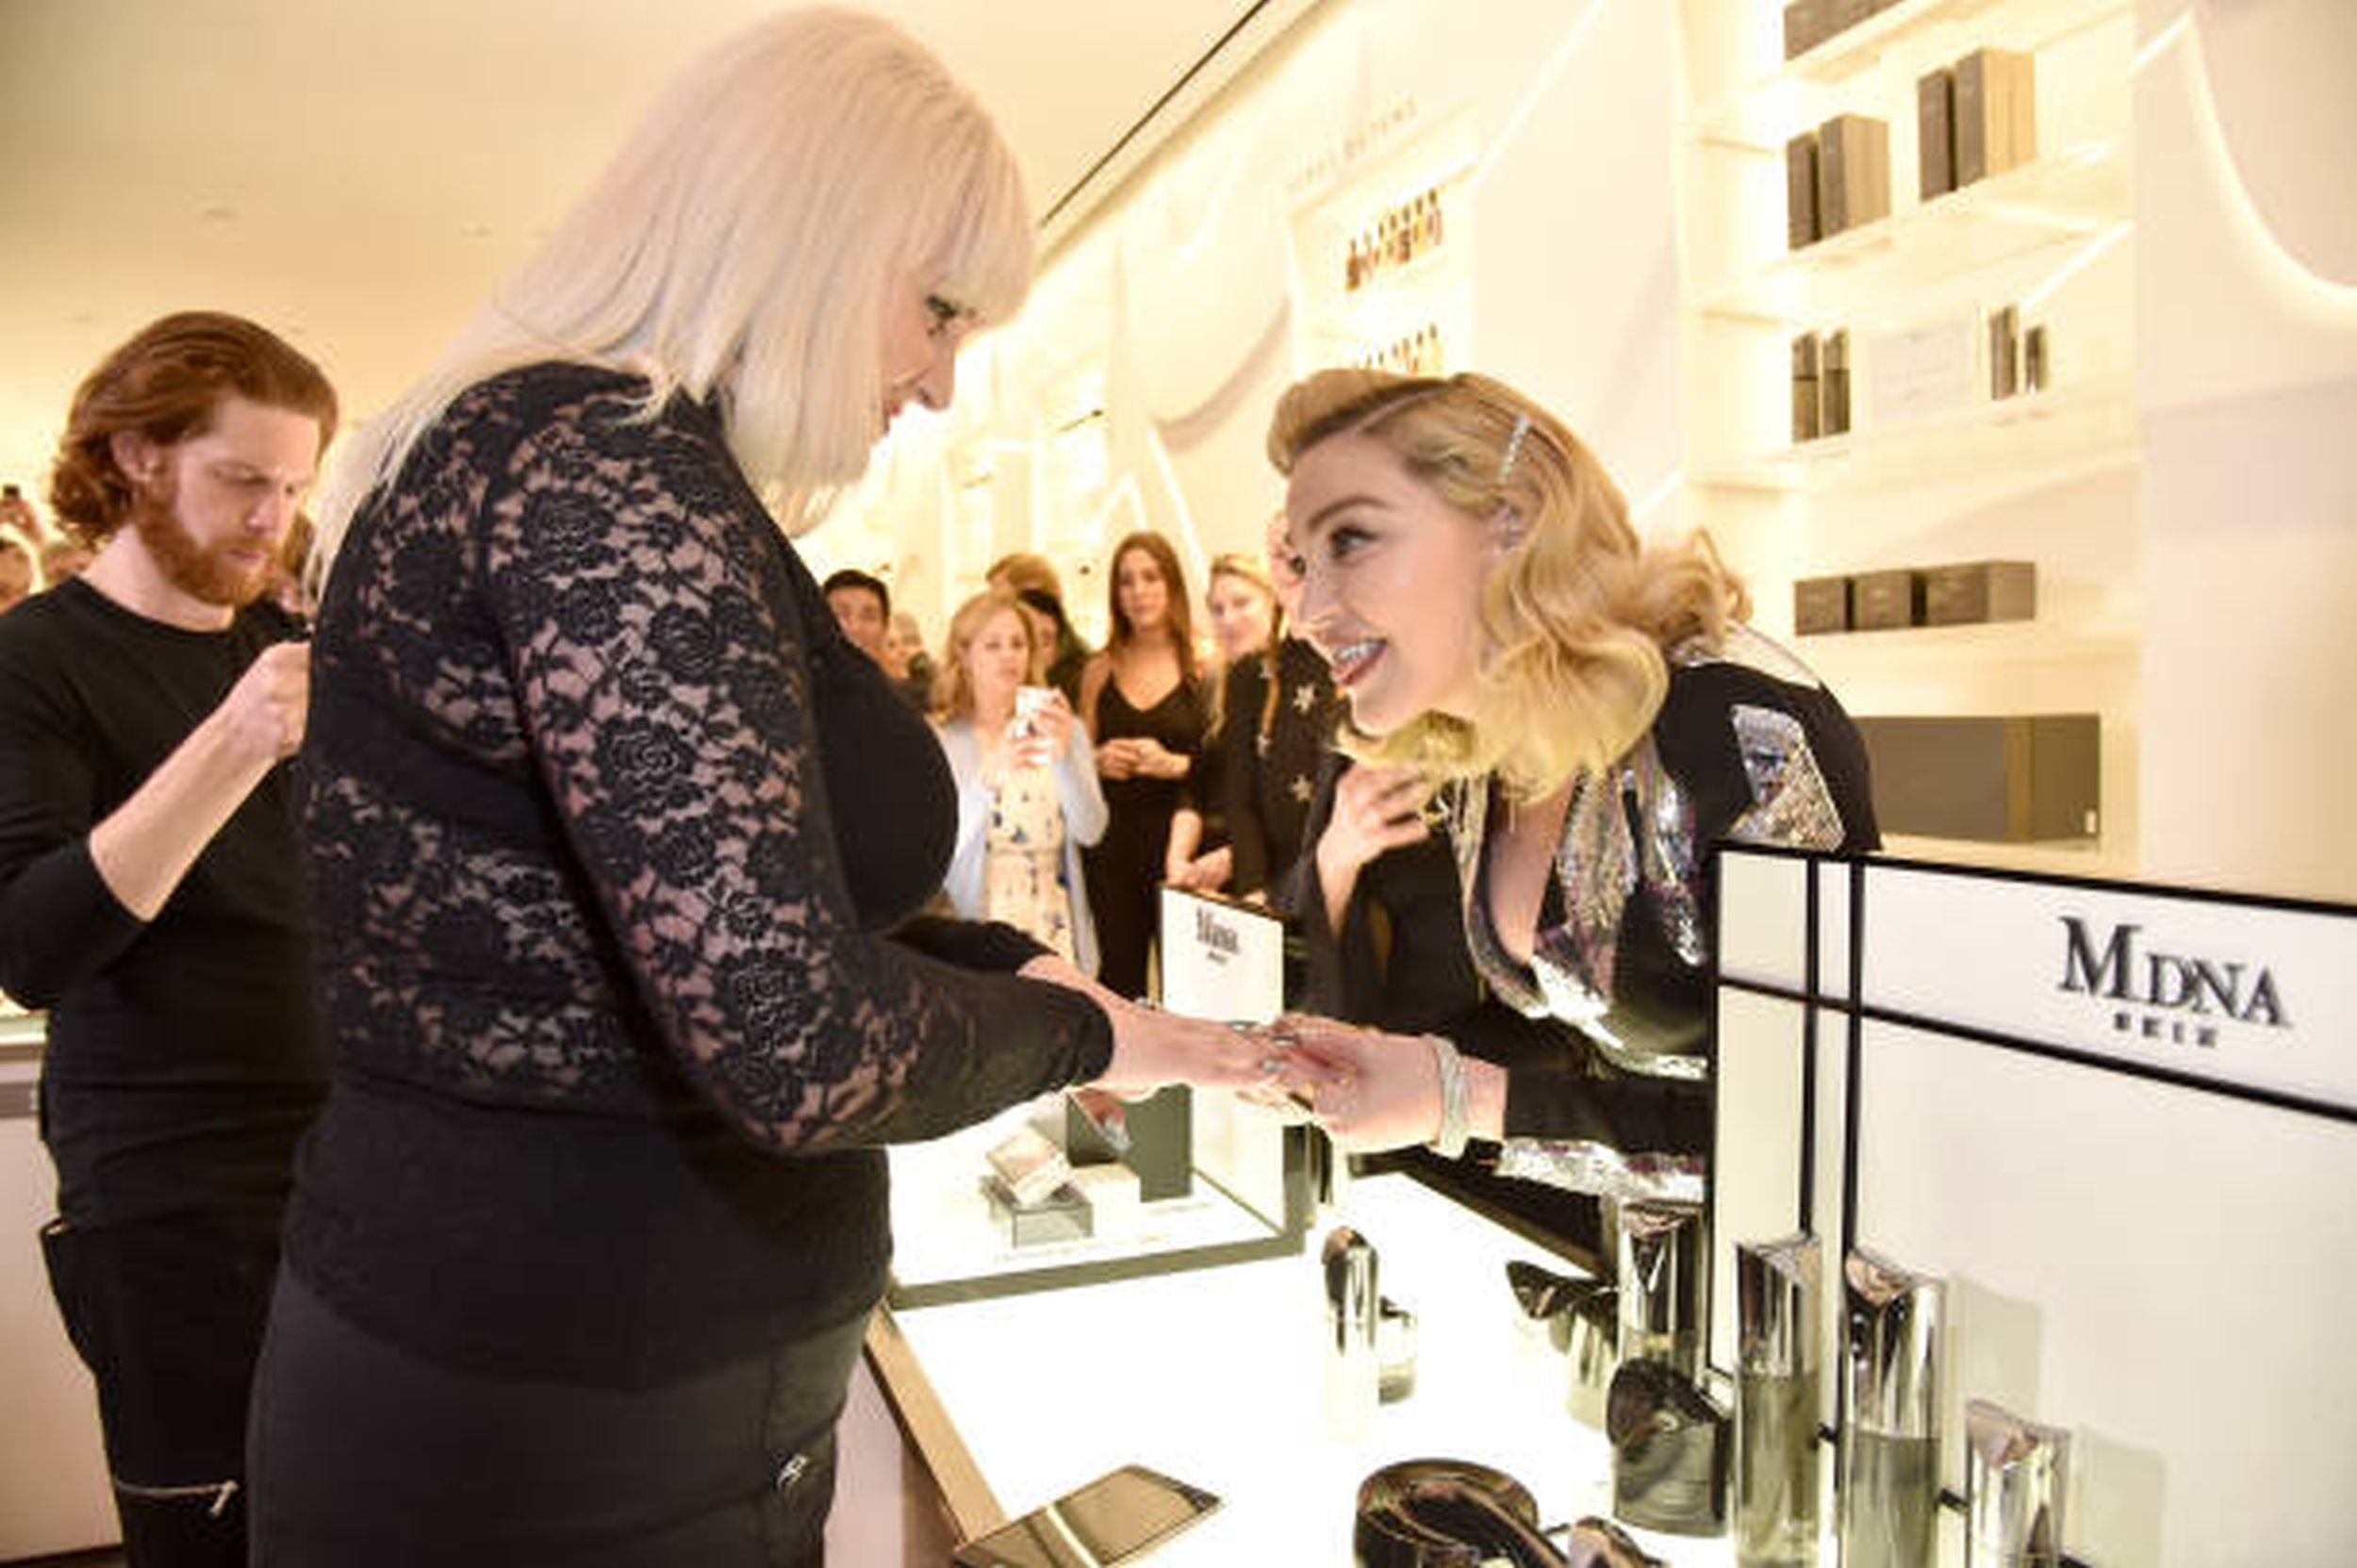 20180308-media-madonna-mdna-skin-barneys-new-york-beverly-hills-09.jpg